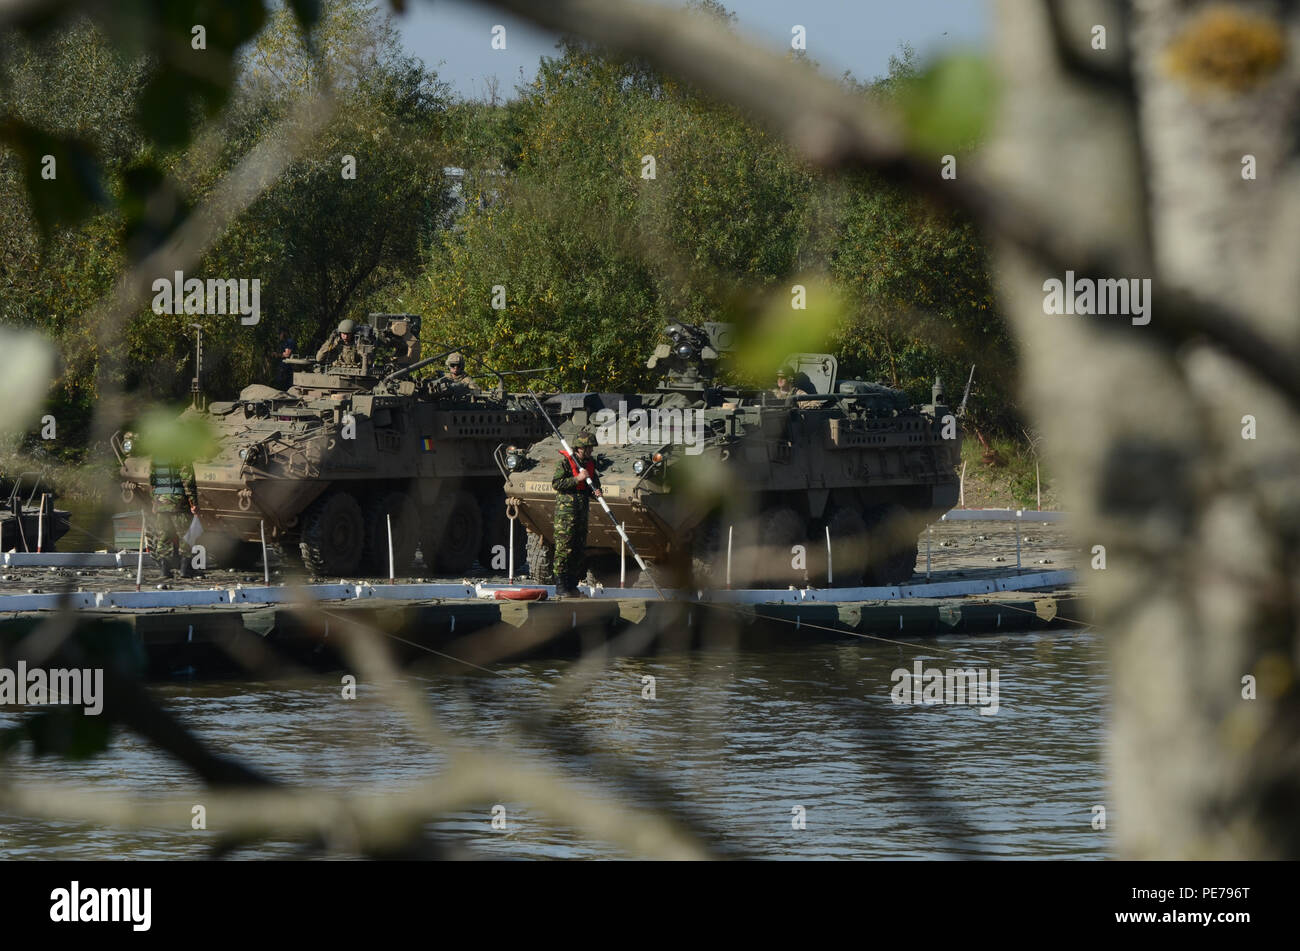 Infantry Carrier Variants (Strykers), cross the Mures River on the bridge that the Romanian Army pieced together during Exercise Dragoon Crossing – Romania, Oct. 24-26, 2015. Dragoon Crossing – Romania is a strengthening of NATO's persistent presence in the region in support of Operation Atlantic Resolve.  (U.S. Army photo by Staff Sgt. Steven M. Colvin/10th Press Camp Headquarters) - Stock Image